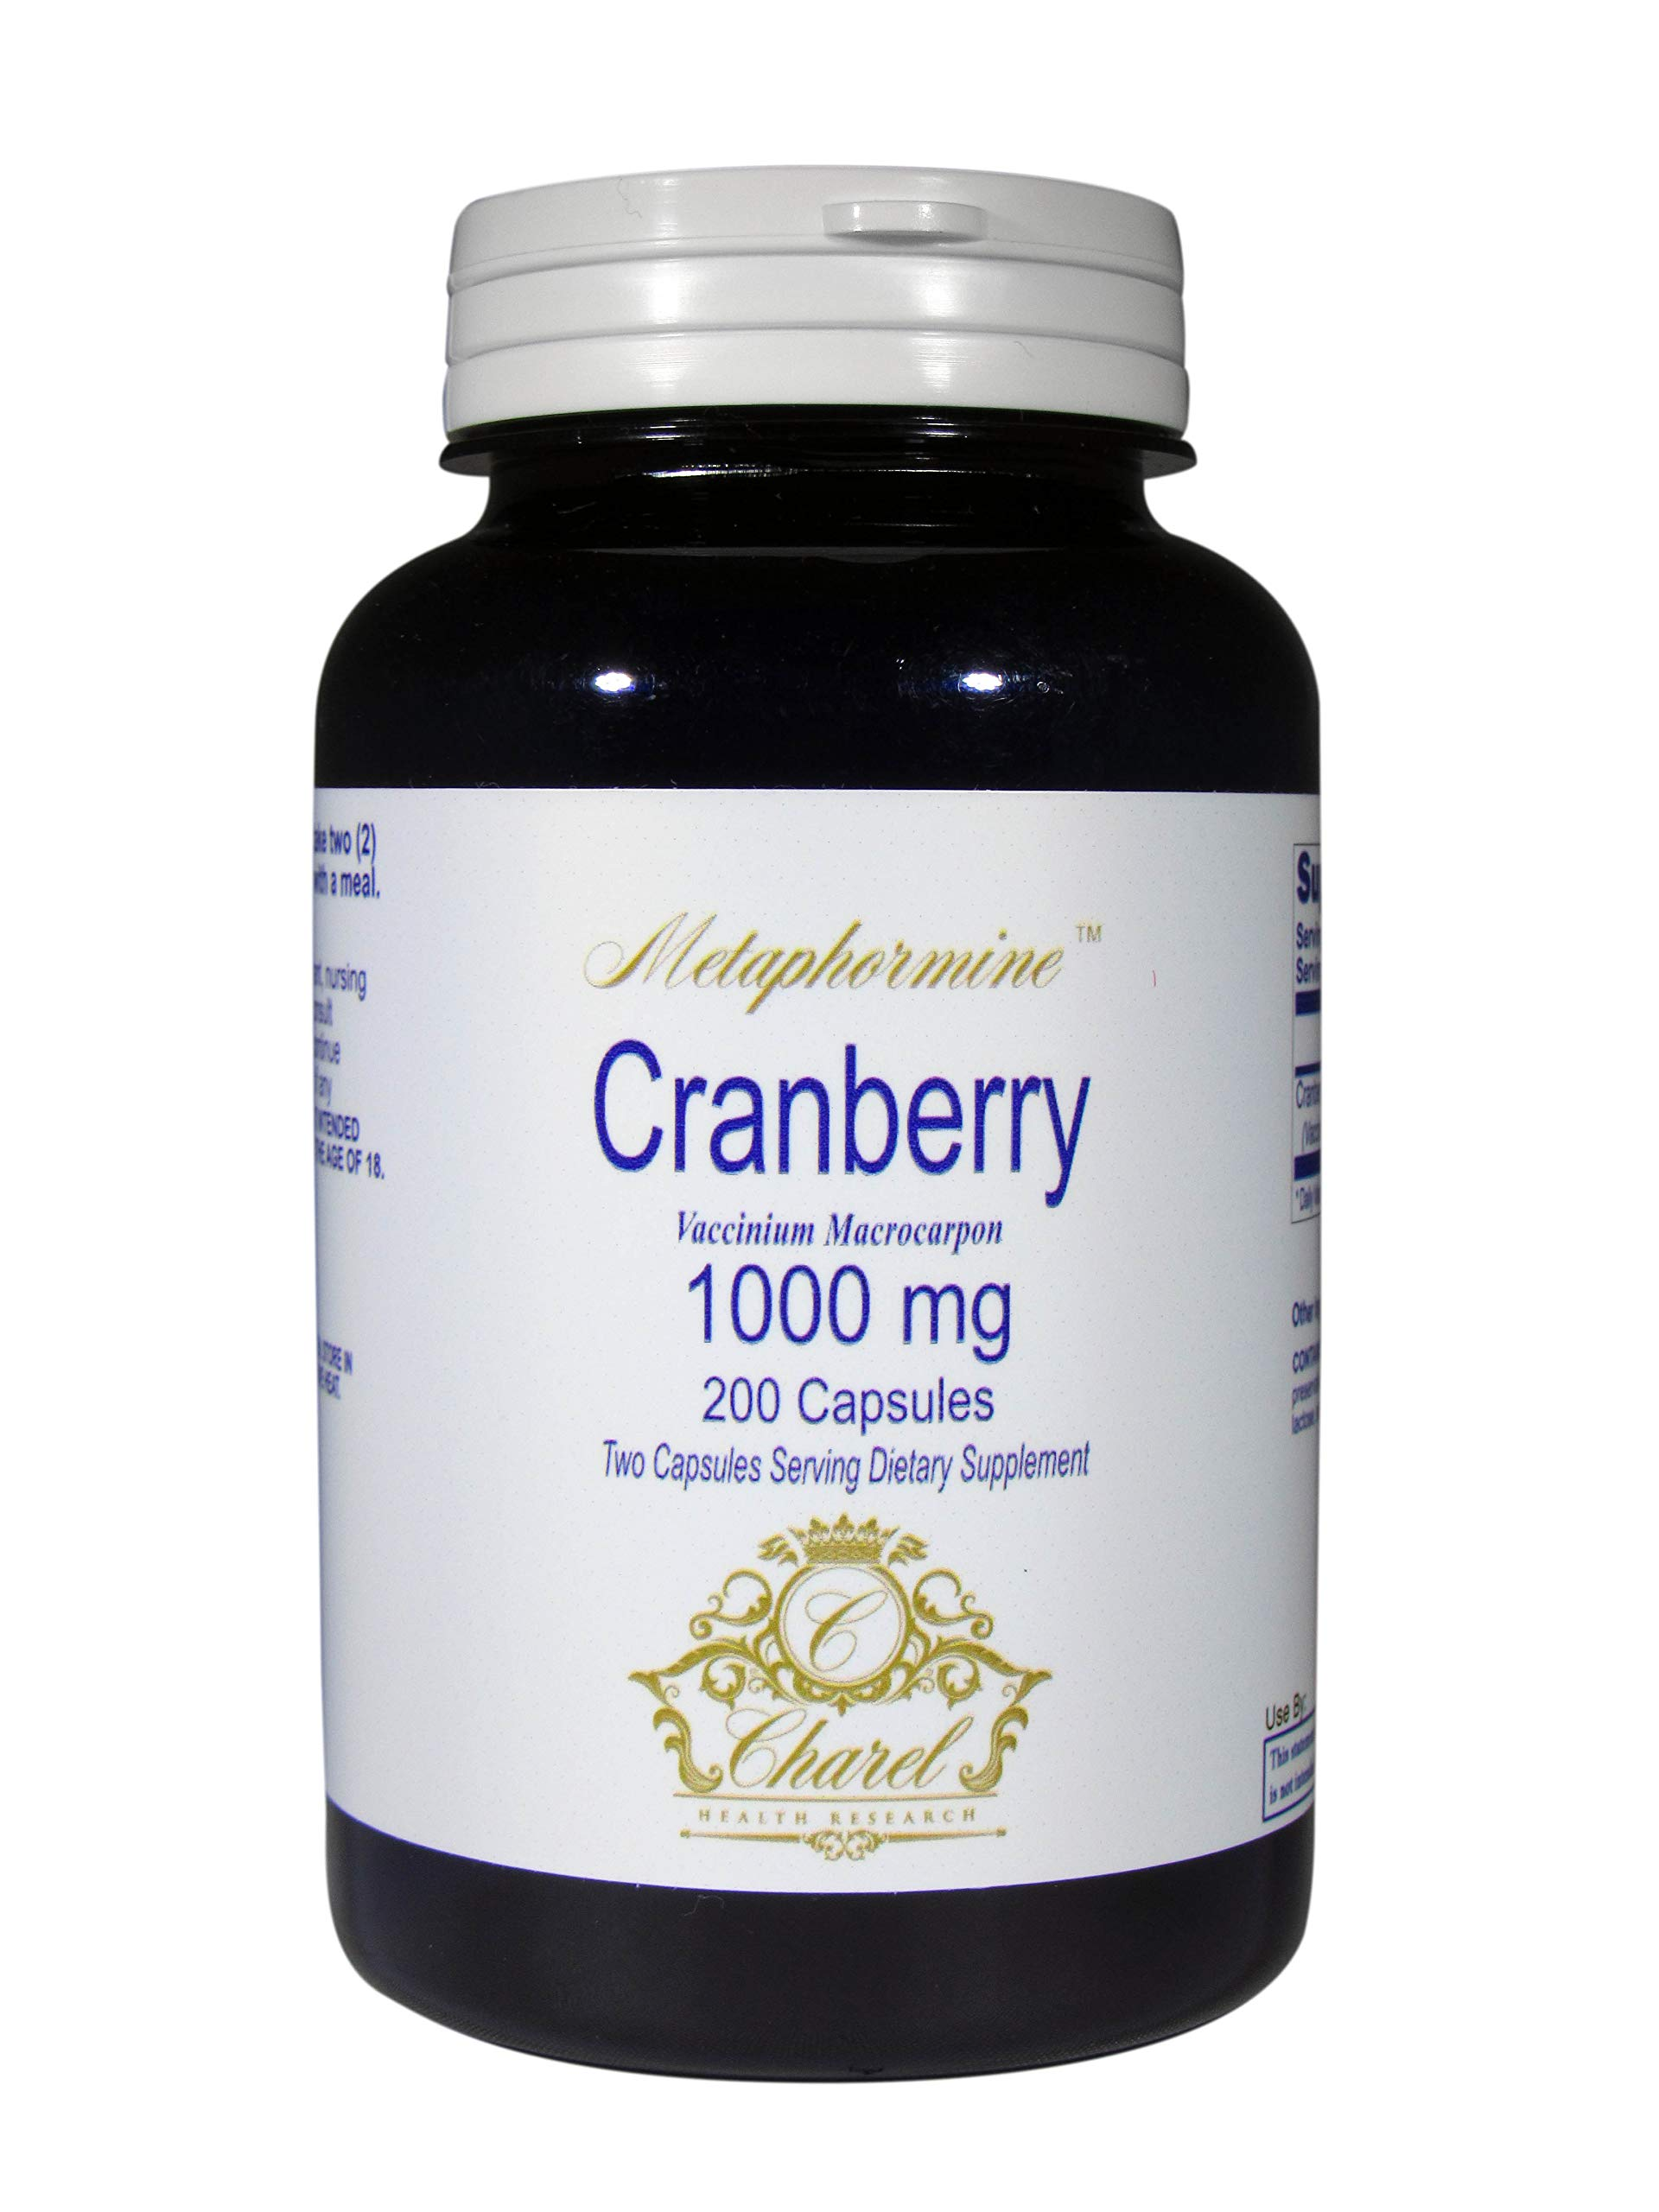 Cranberry Pills 200 Capsules 1000mg - 100 Day Supply of Cranberry Concentrate Pills to Support UTI Treatment, Bladder and Urinary Health - All Natural Ingredients